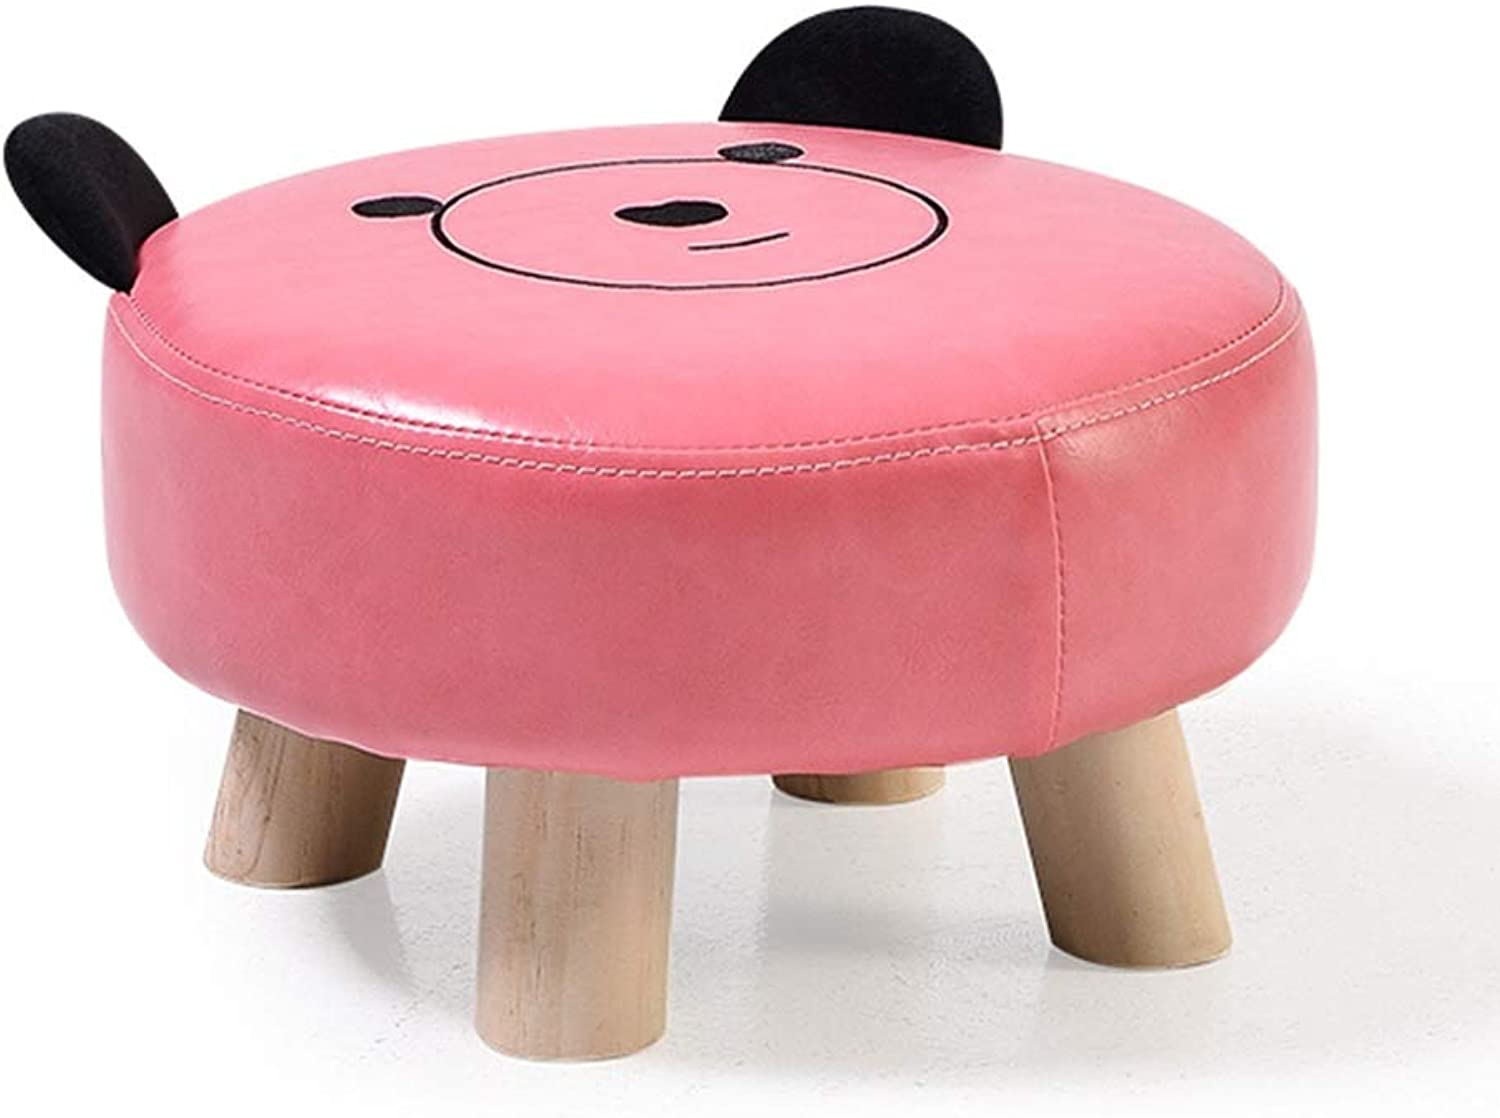 Small Stool-Solid Wood Stool Kindergarten Cartoon Small Bench Stool Cute Footstool Sofa Stool FENPING (color   A, Size   30.5  18cm)